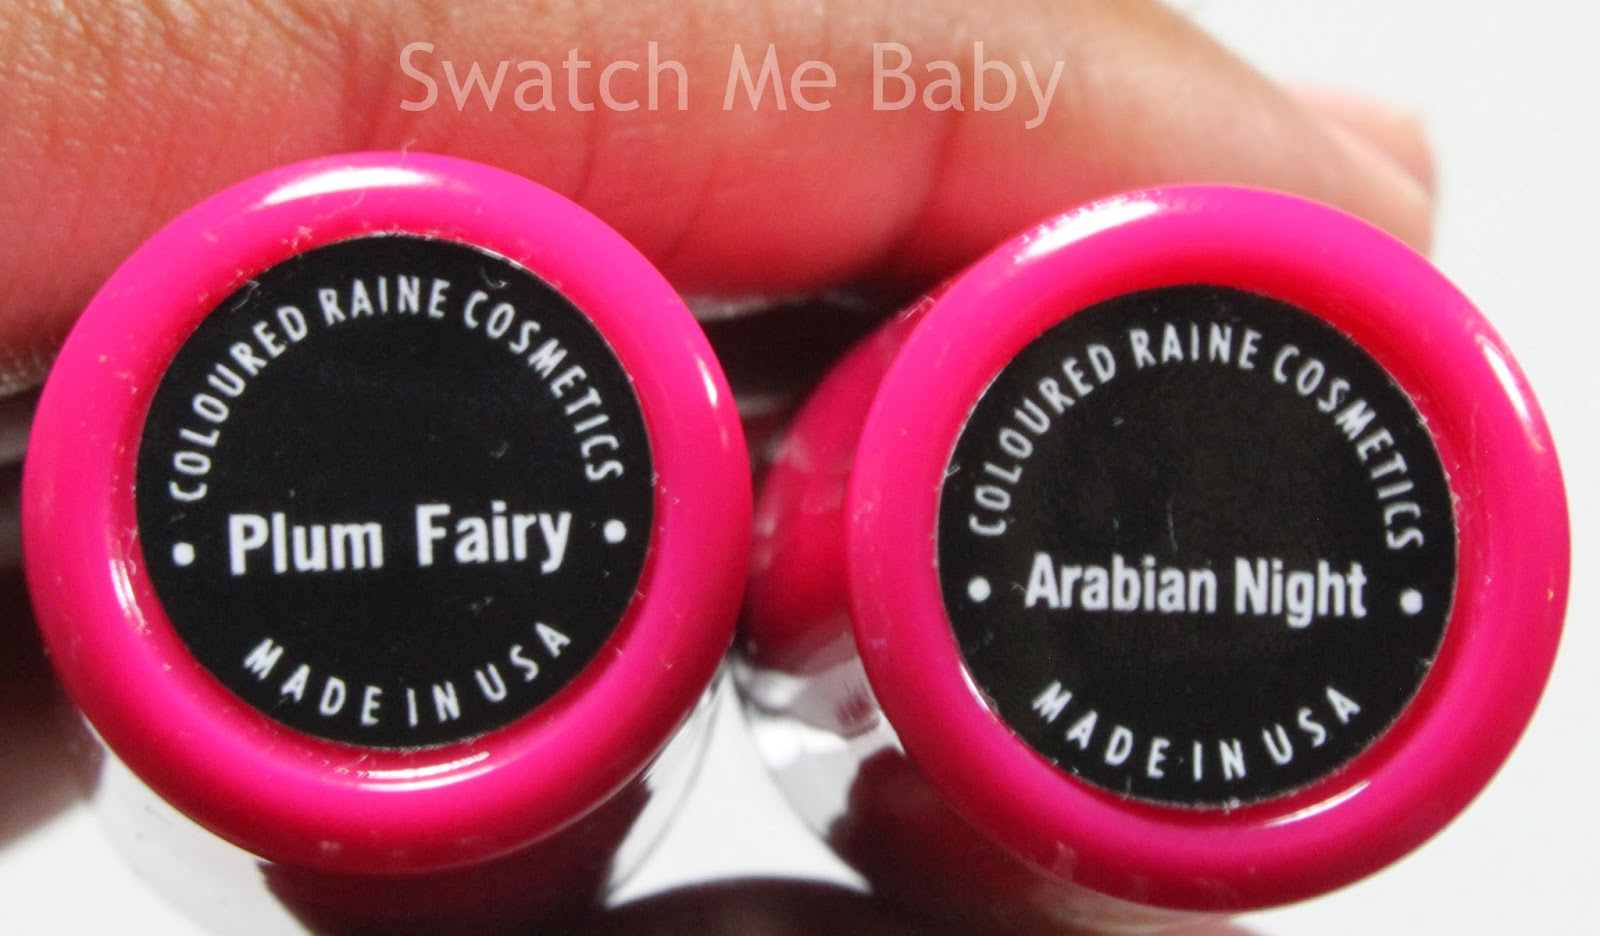 Coloured Raine Lipstick in Plum Fairy and Arabian Night Labels